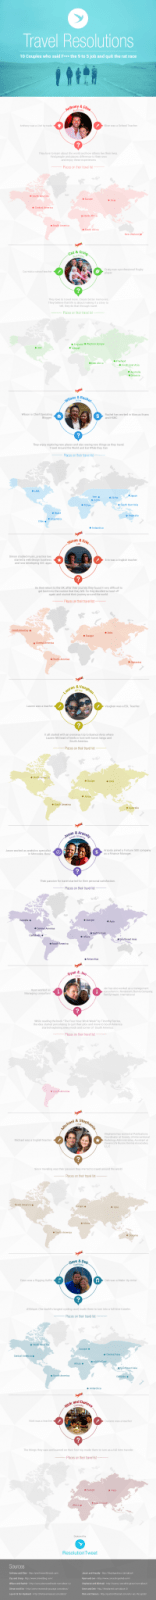 10 Couples Who Quit the Rat Race and Started Travelling the World – Infographic